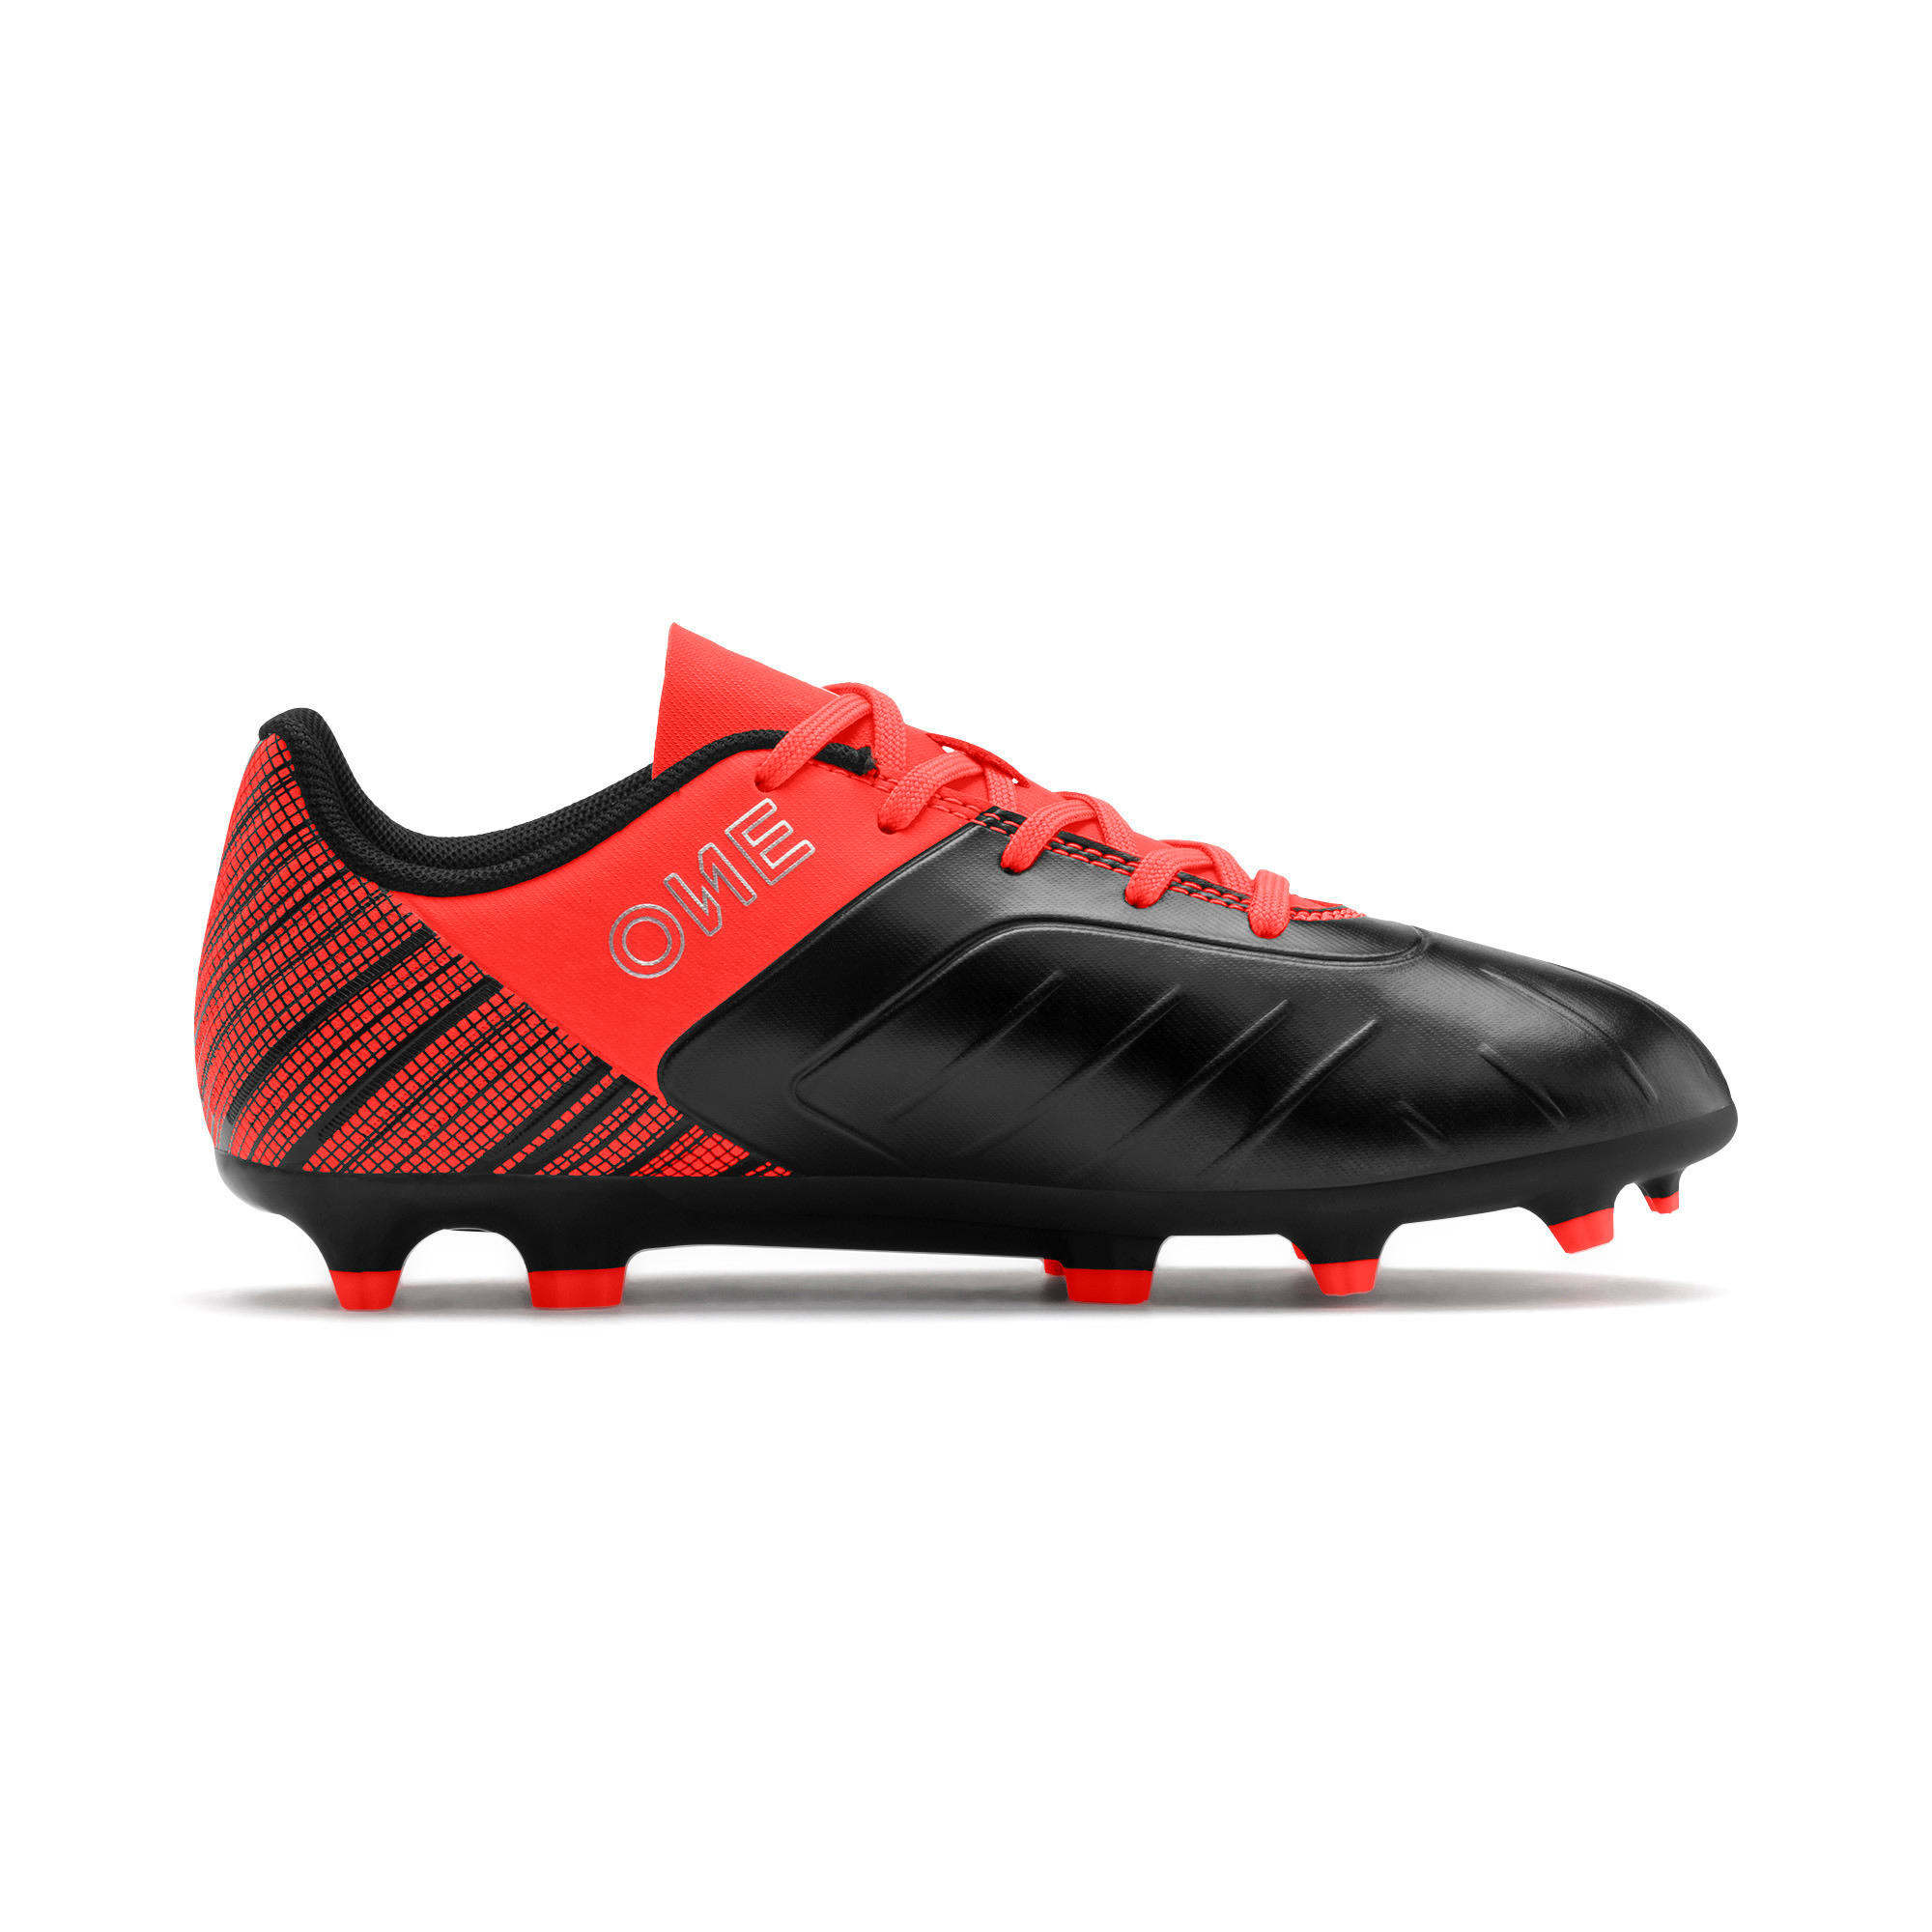 Thumbnail 5 of PUMA ONE 5.4 IT Youth Football Boots, Black-Nrgy Red-Aged Silver, medium-IND